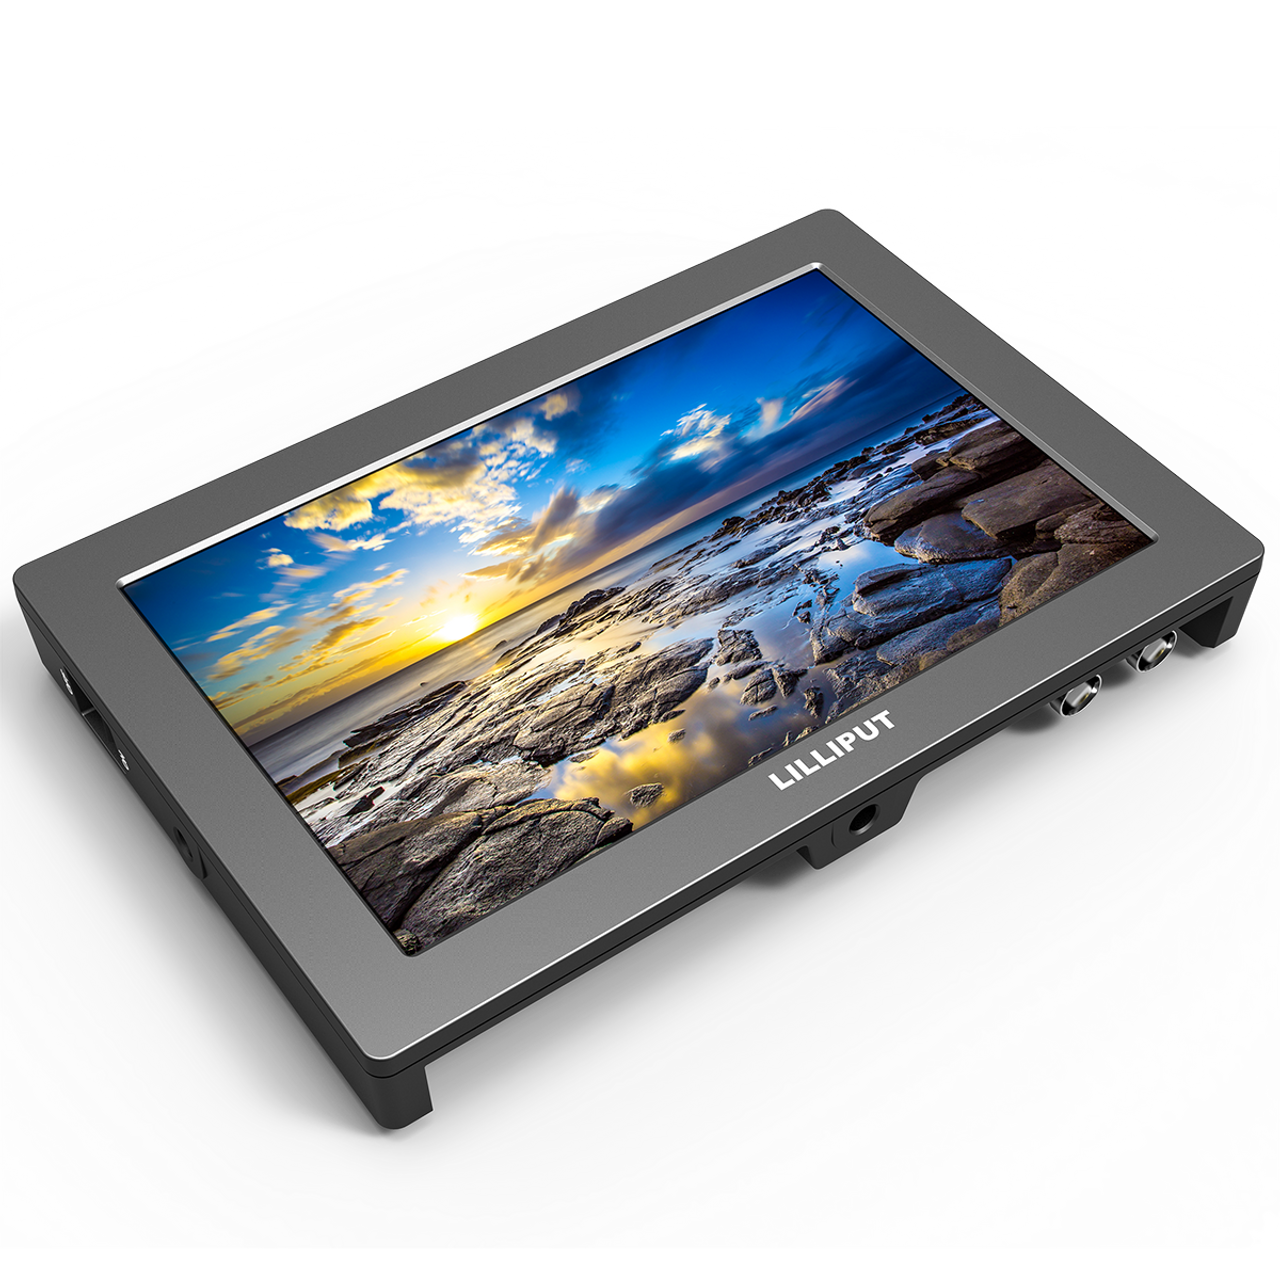 "Q7 Pro  (7"" Full HD SDI Monitor with HDR/3D LUTs)"